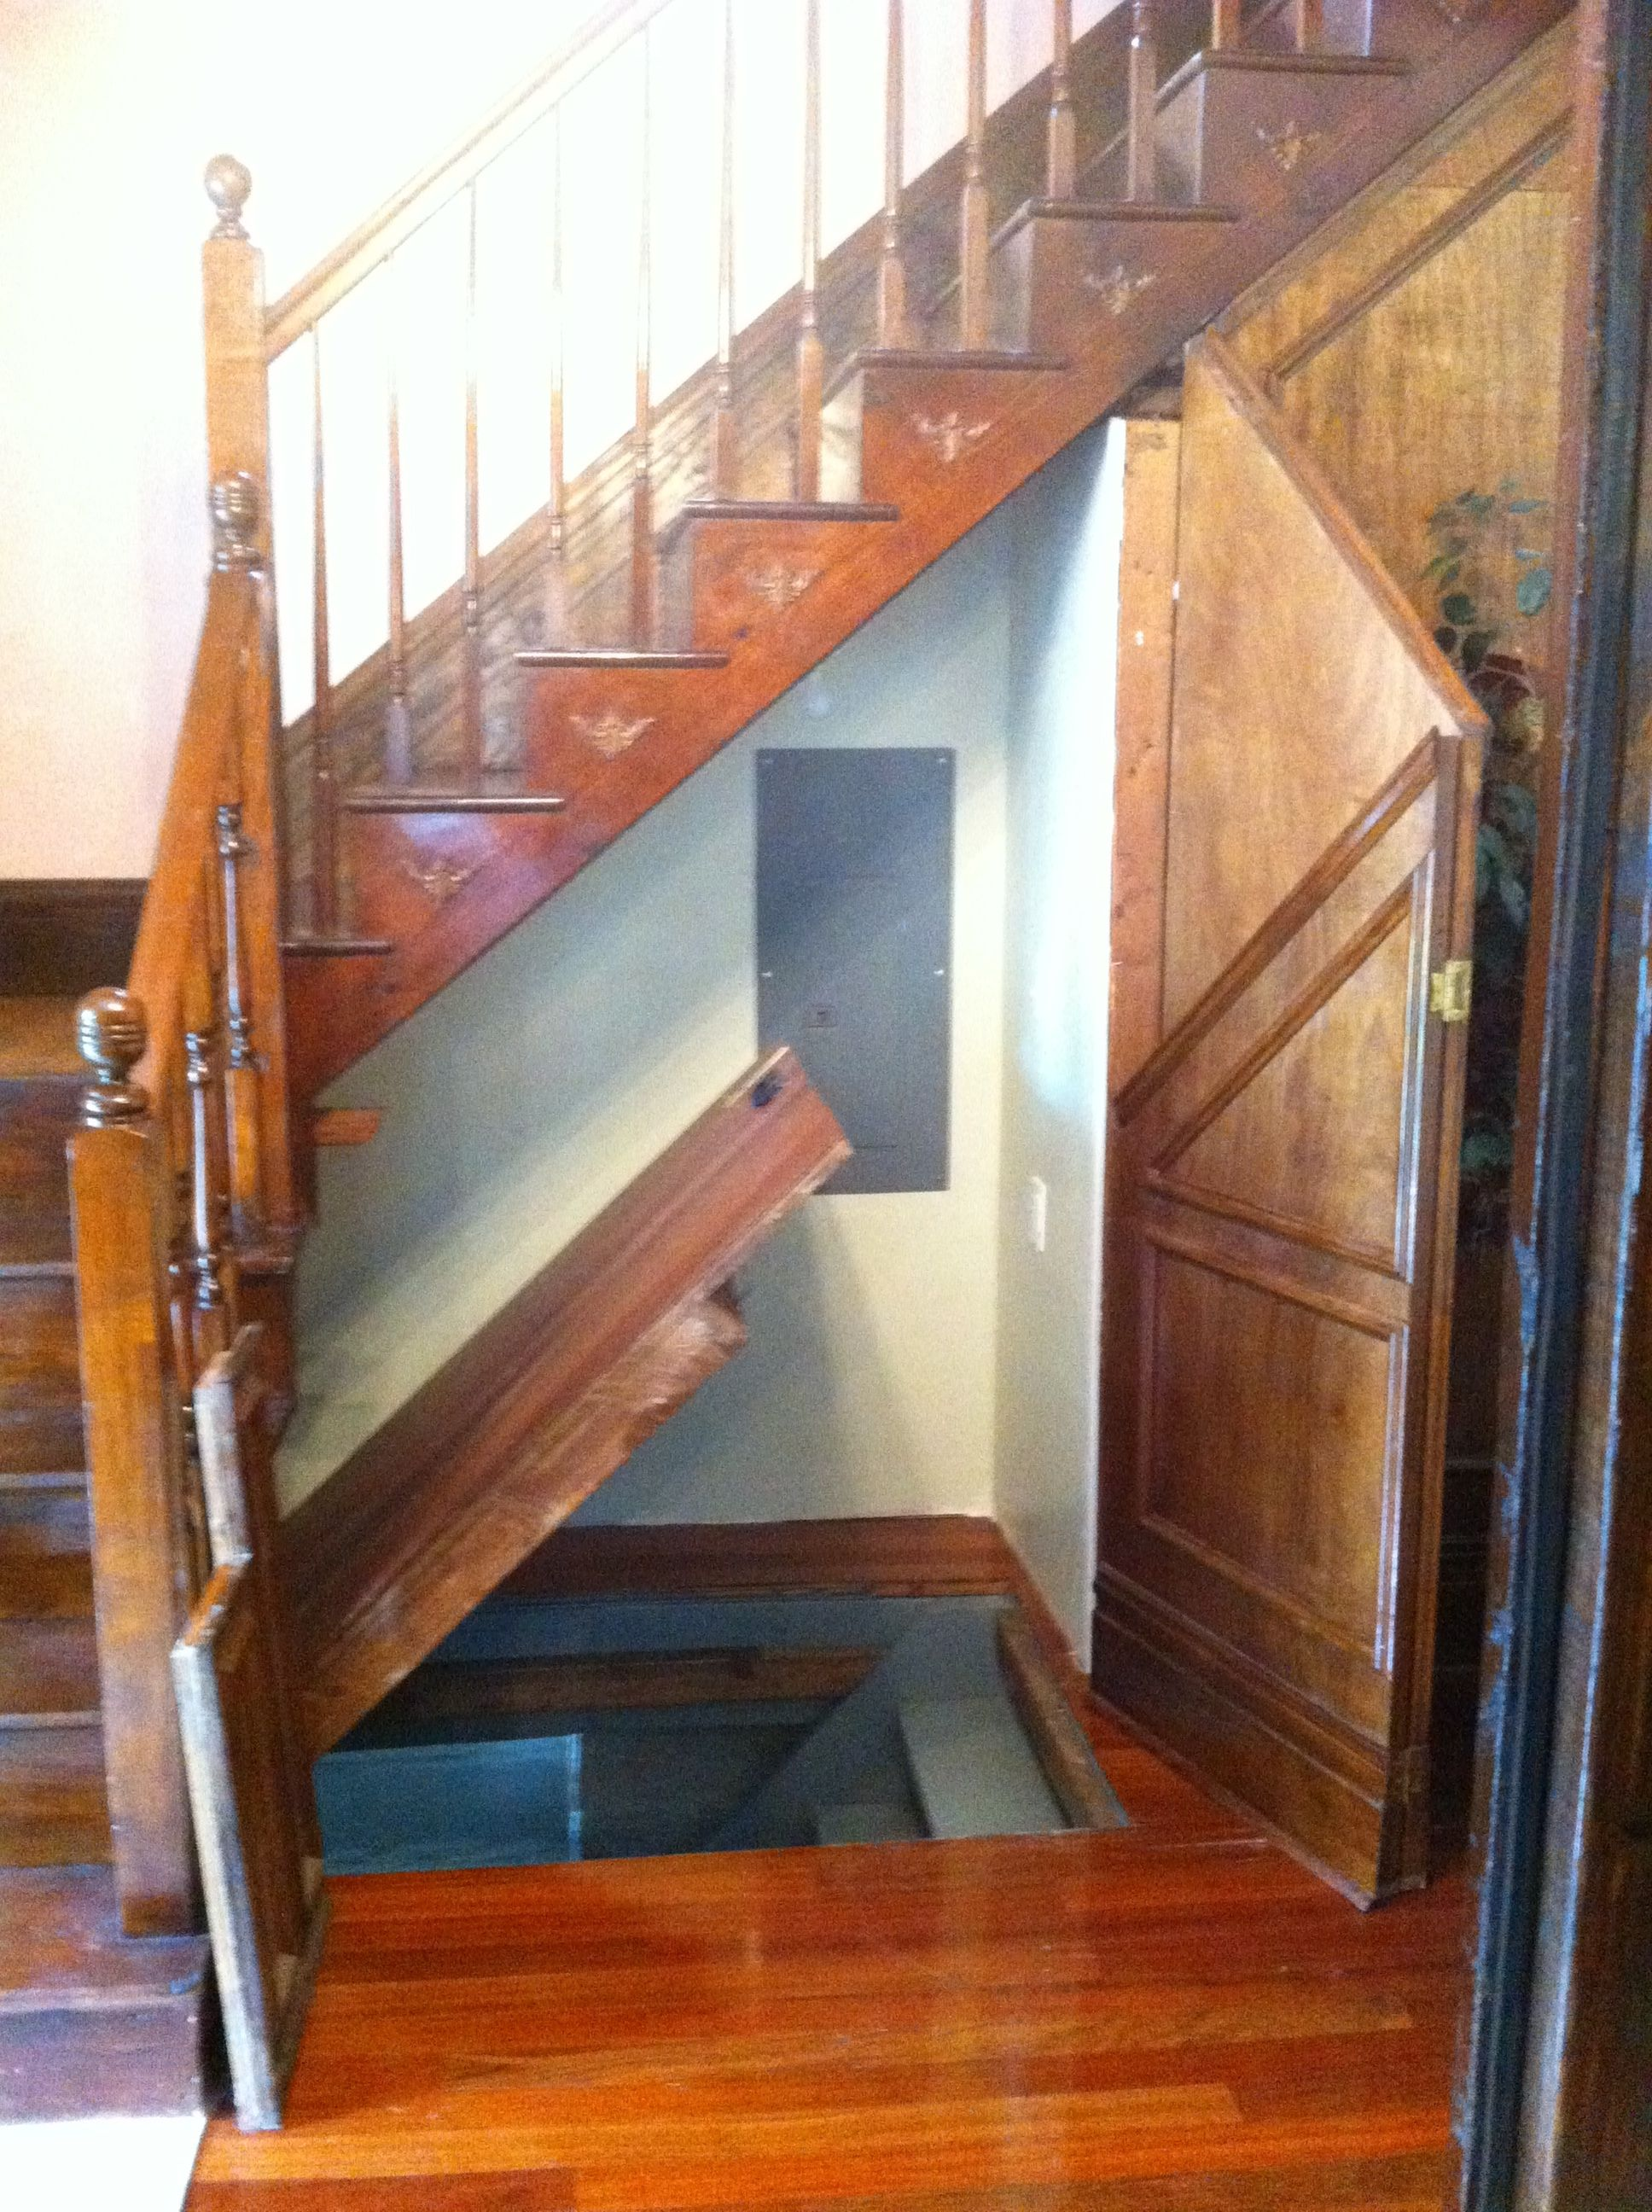 Hidden Room Under Stairs Hidden Staircase Under Another Staircase Or Hidden Door For Small .